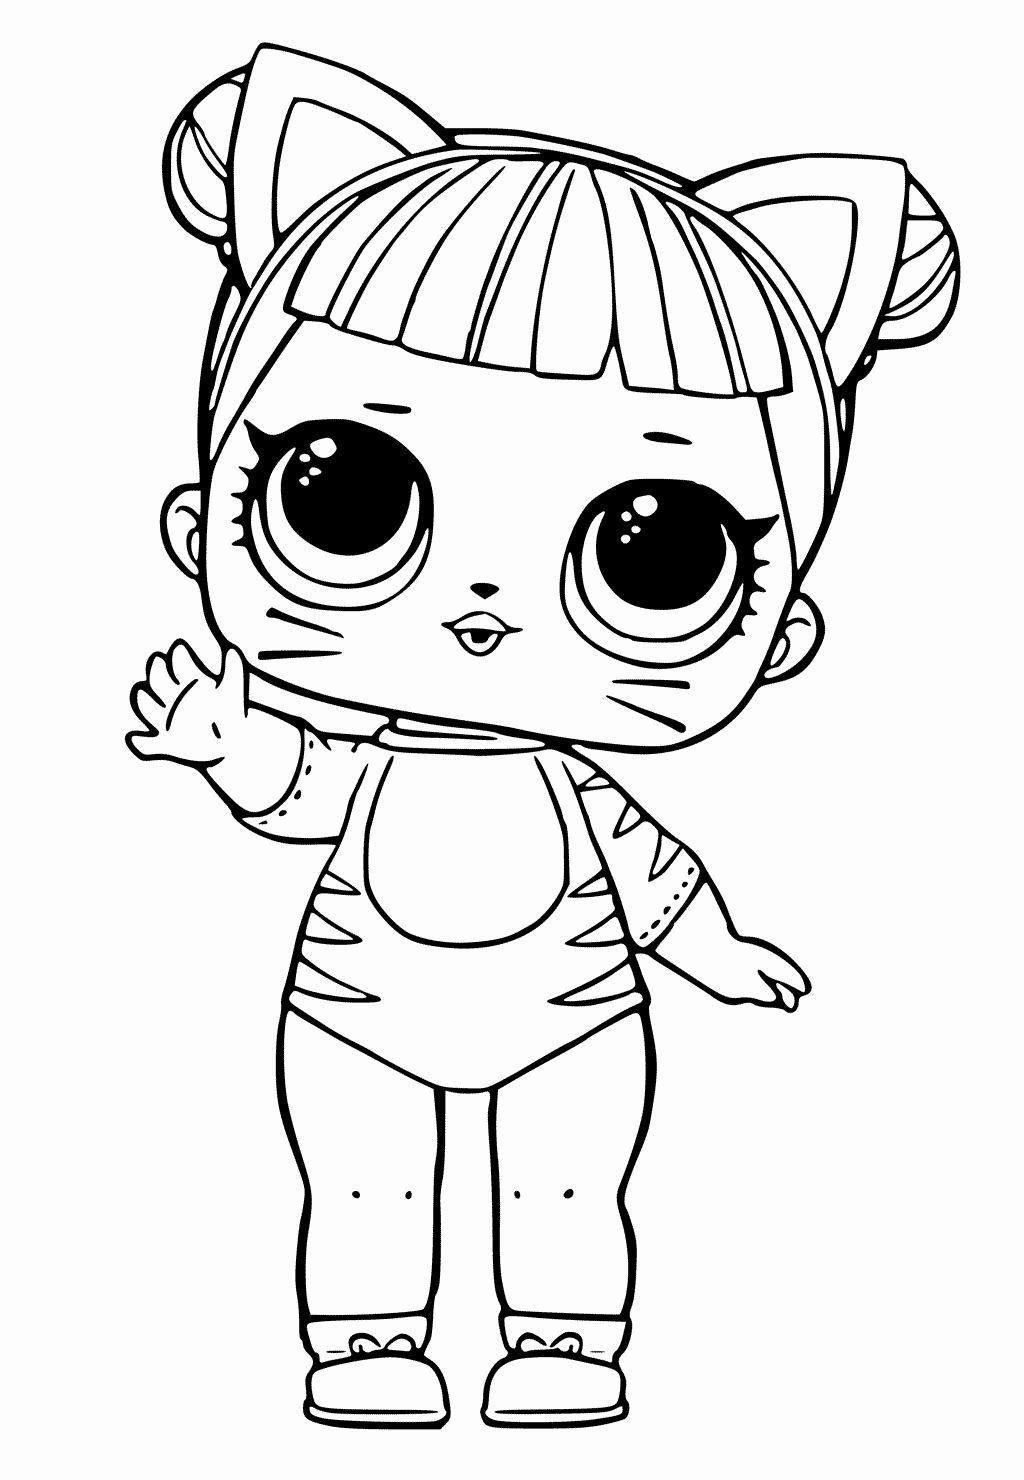 Coloring Pages For Girls Animals Awesome Lol Dolls Coloring Pages Printables Baby Coloring Pages Kitty Coloring Cat Coloring Page